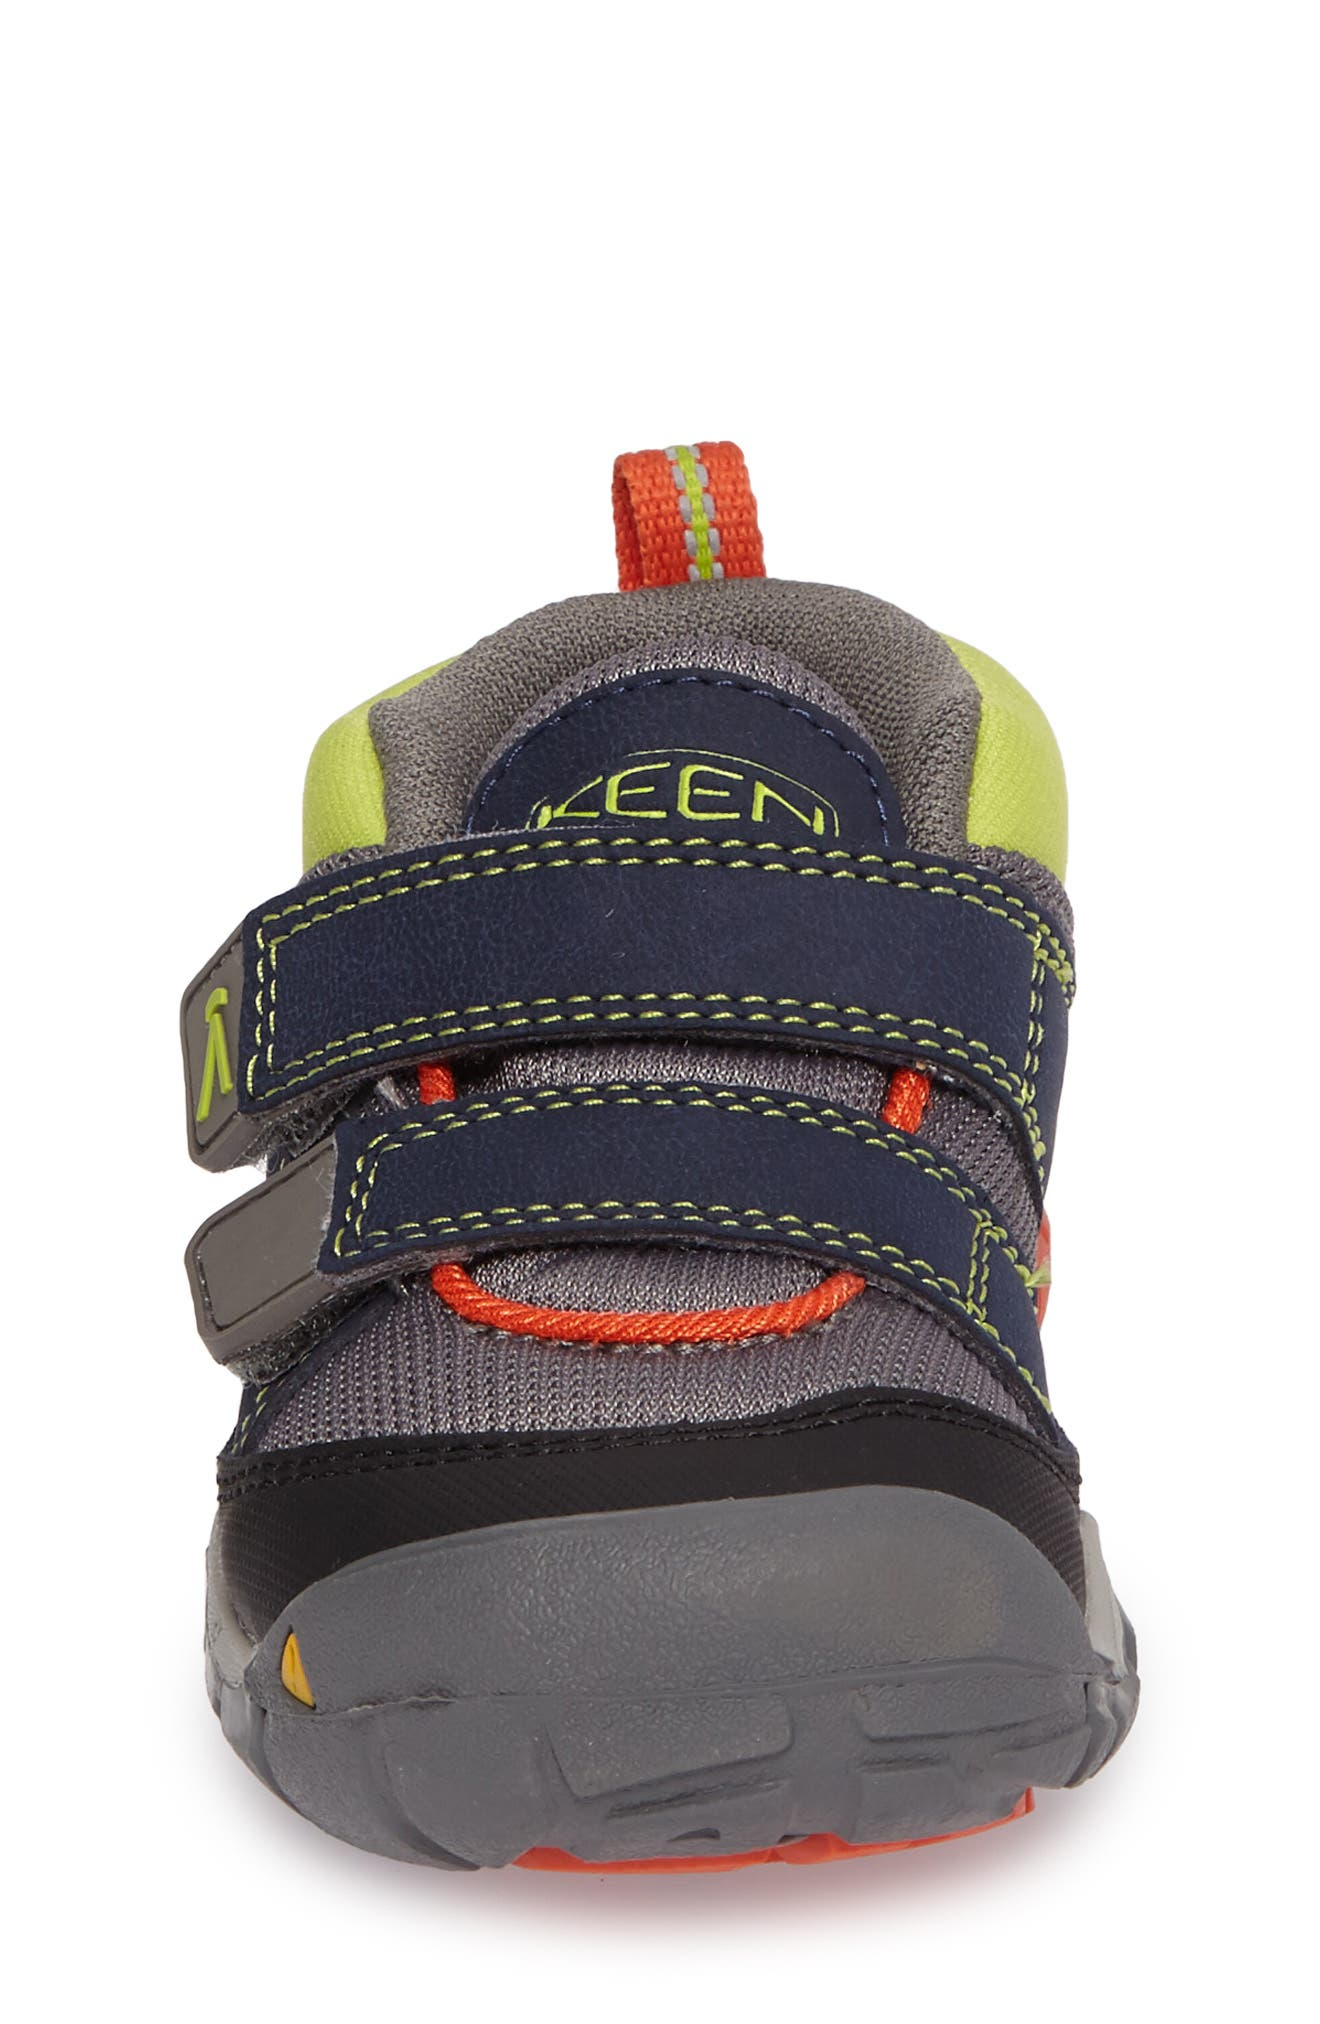 Peek-a-Shoe Sneaker,                             Alternate thumbnail 10, color,